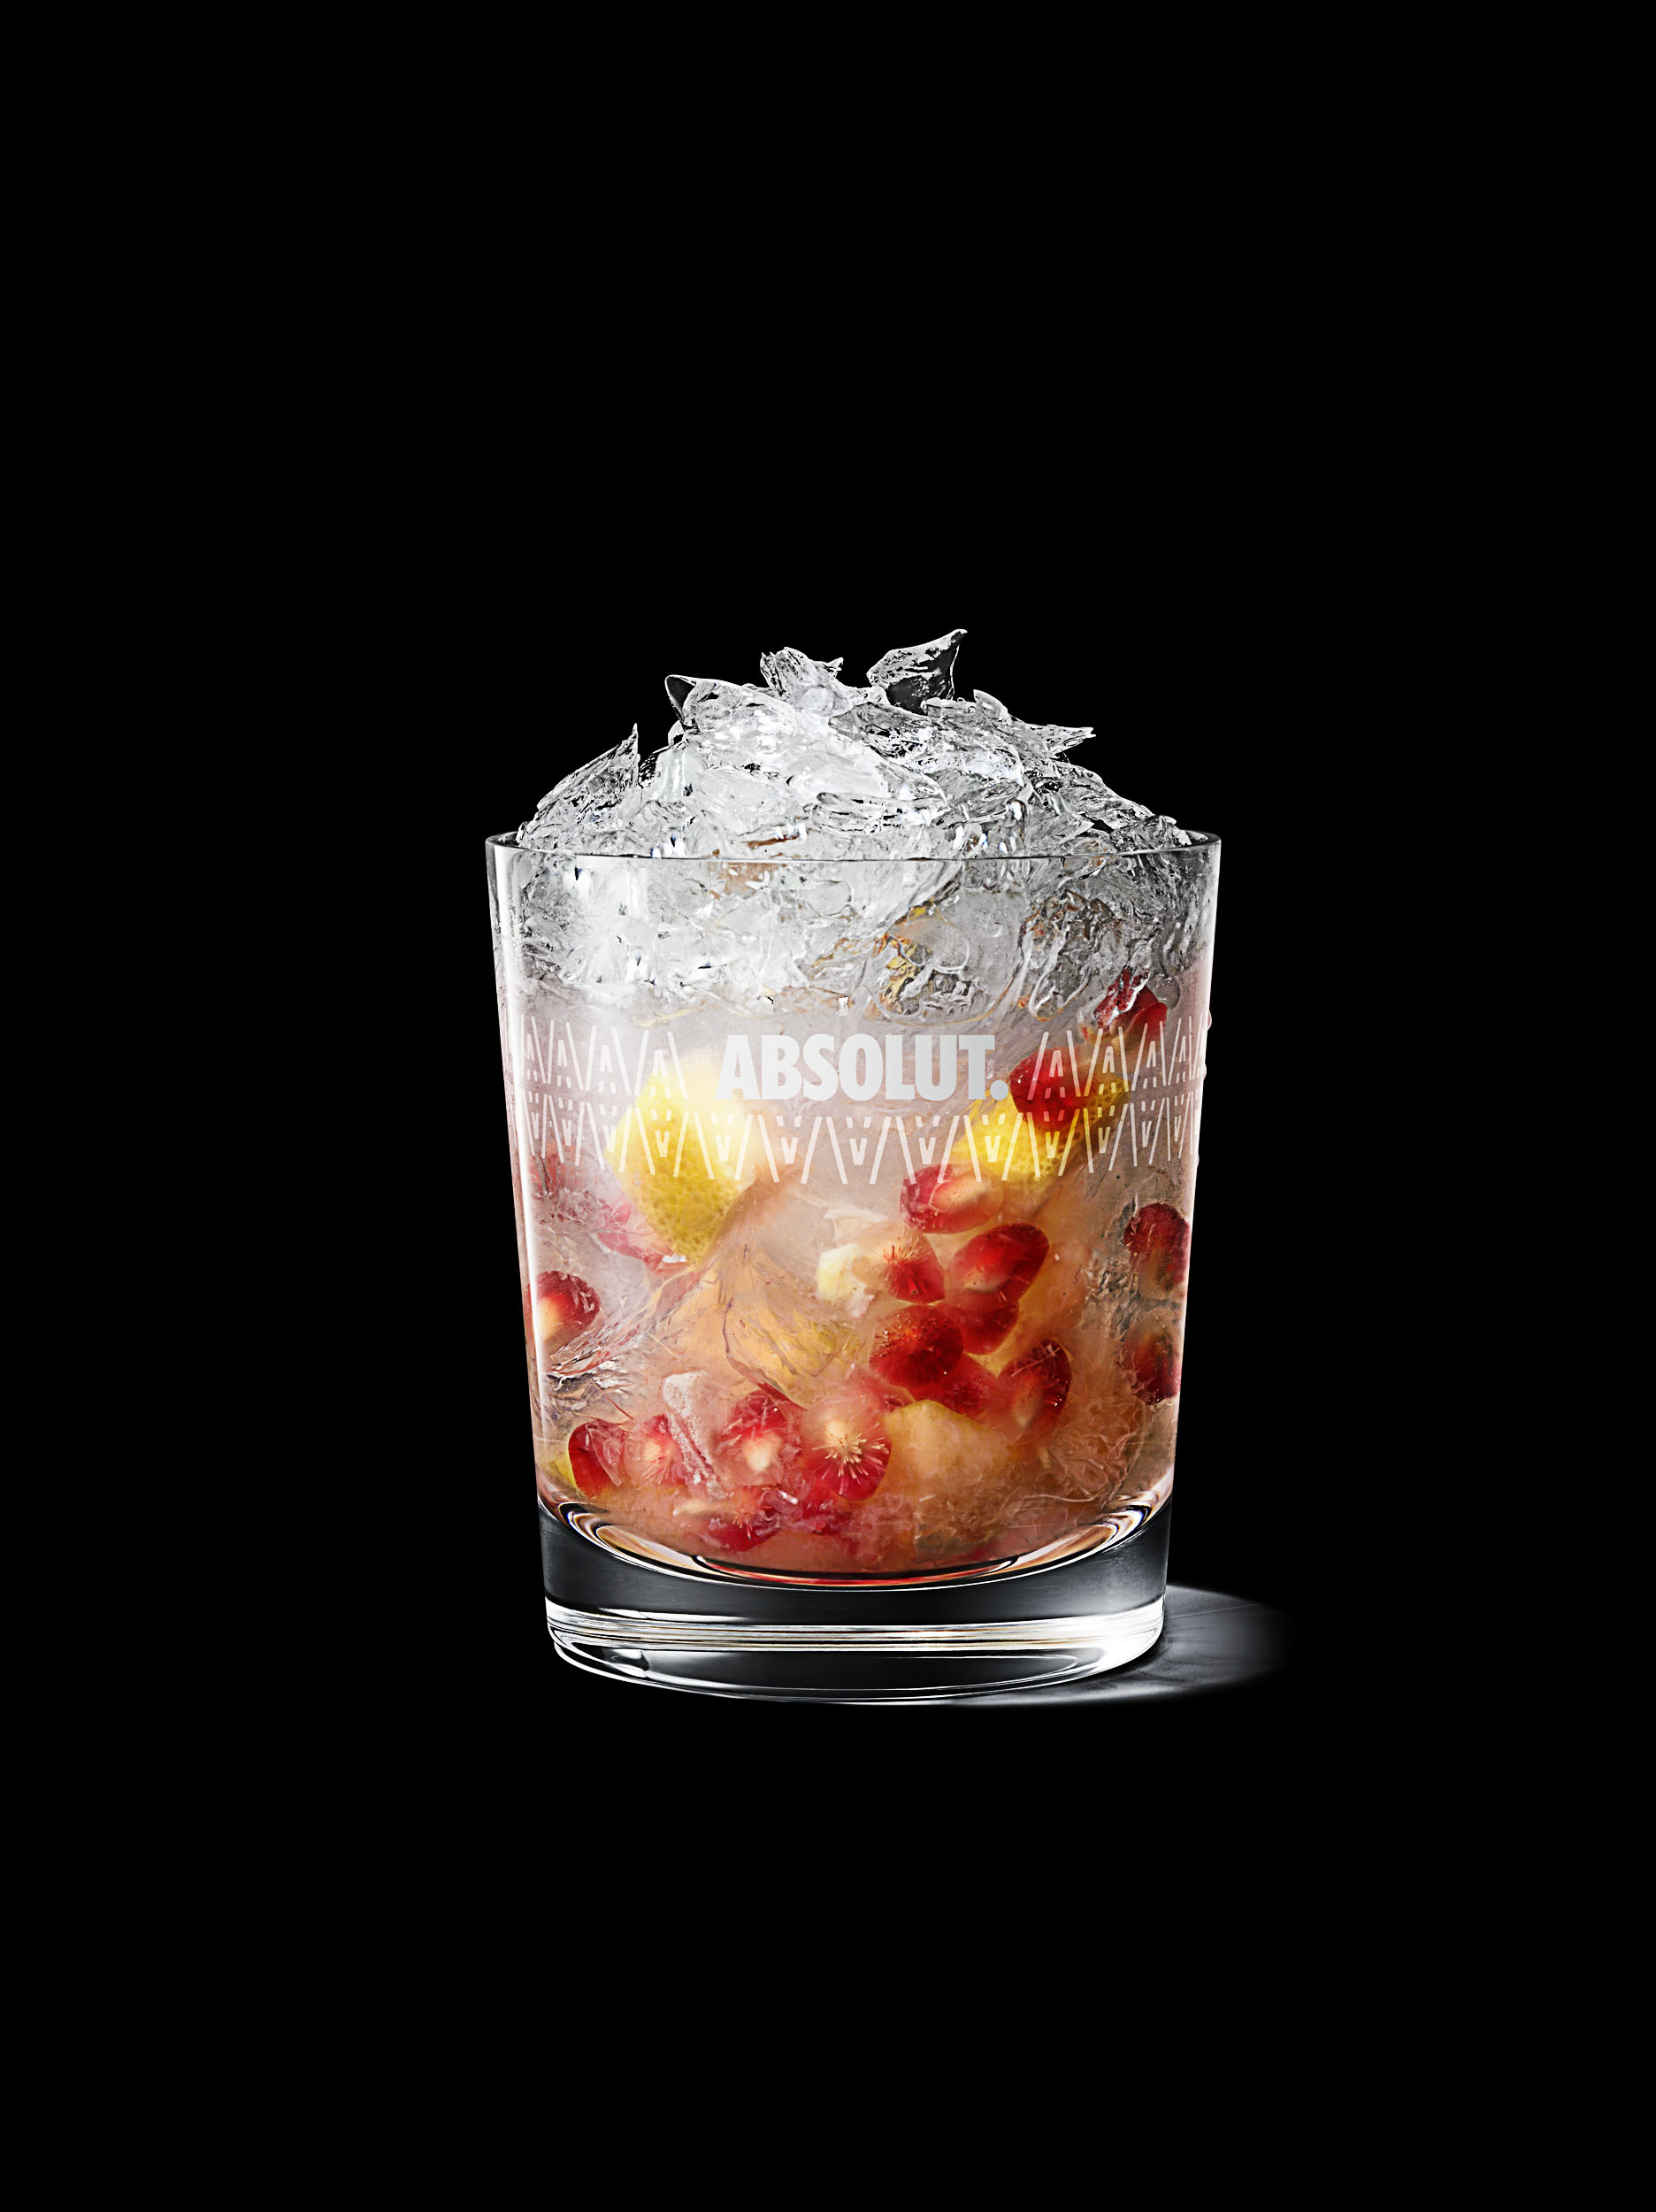 jensmortensen-absolut-vodka-036f7a75